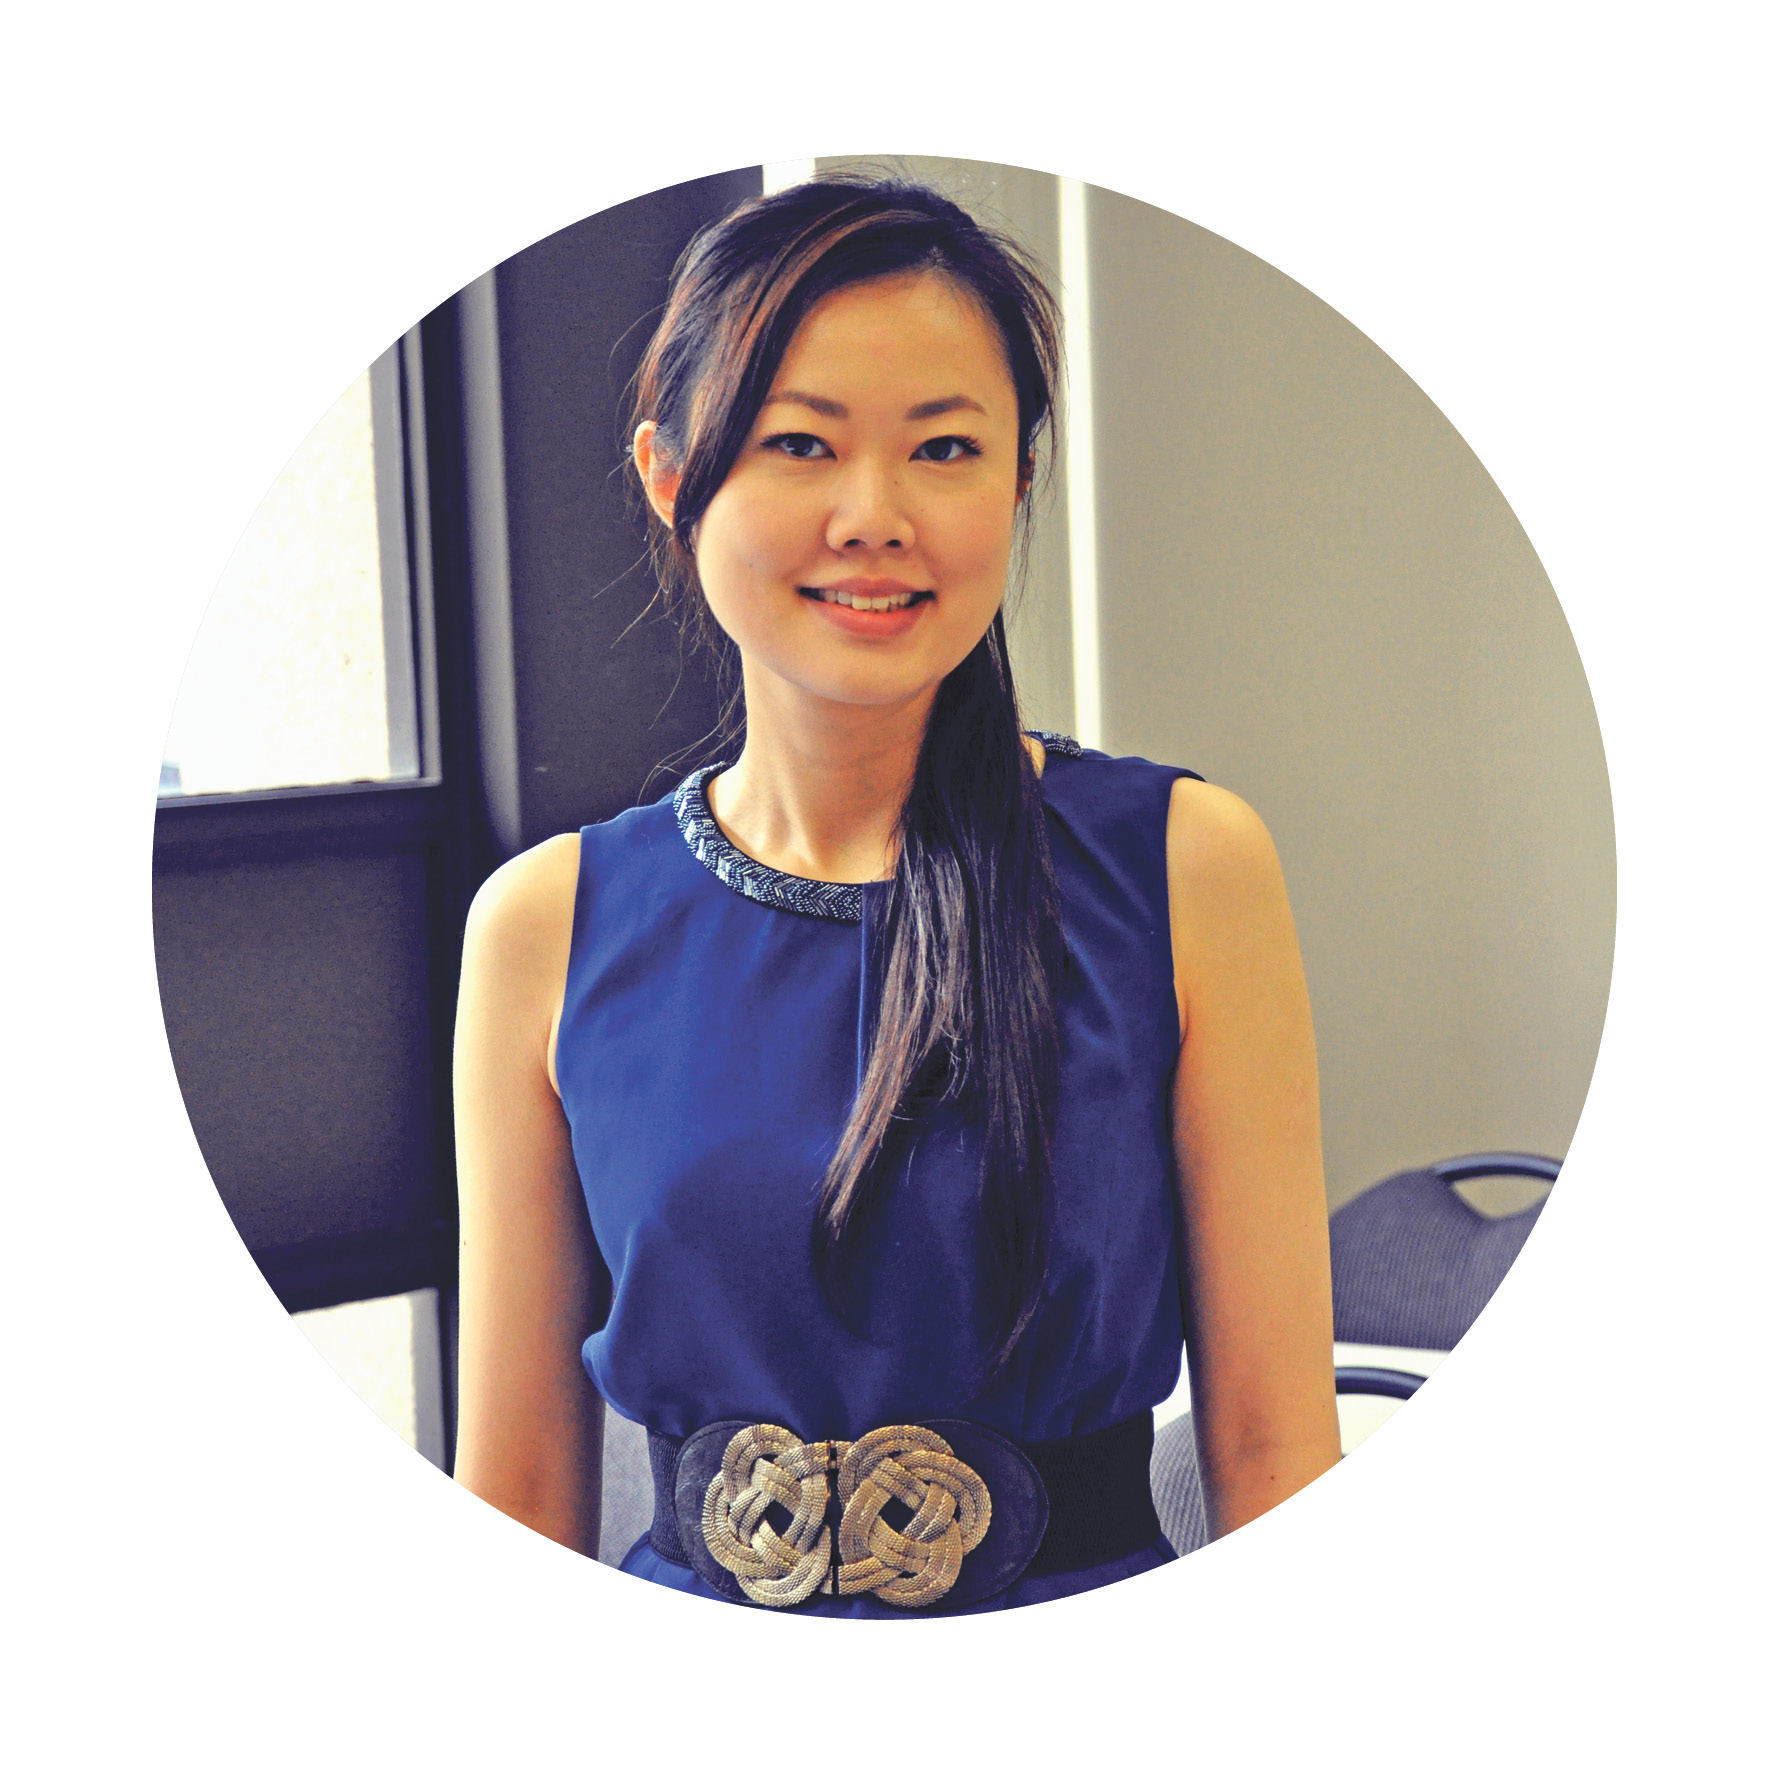 Amy Au - Maths Tutor and Co-founder of Pinnacle Coaching College